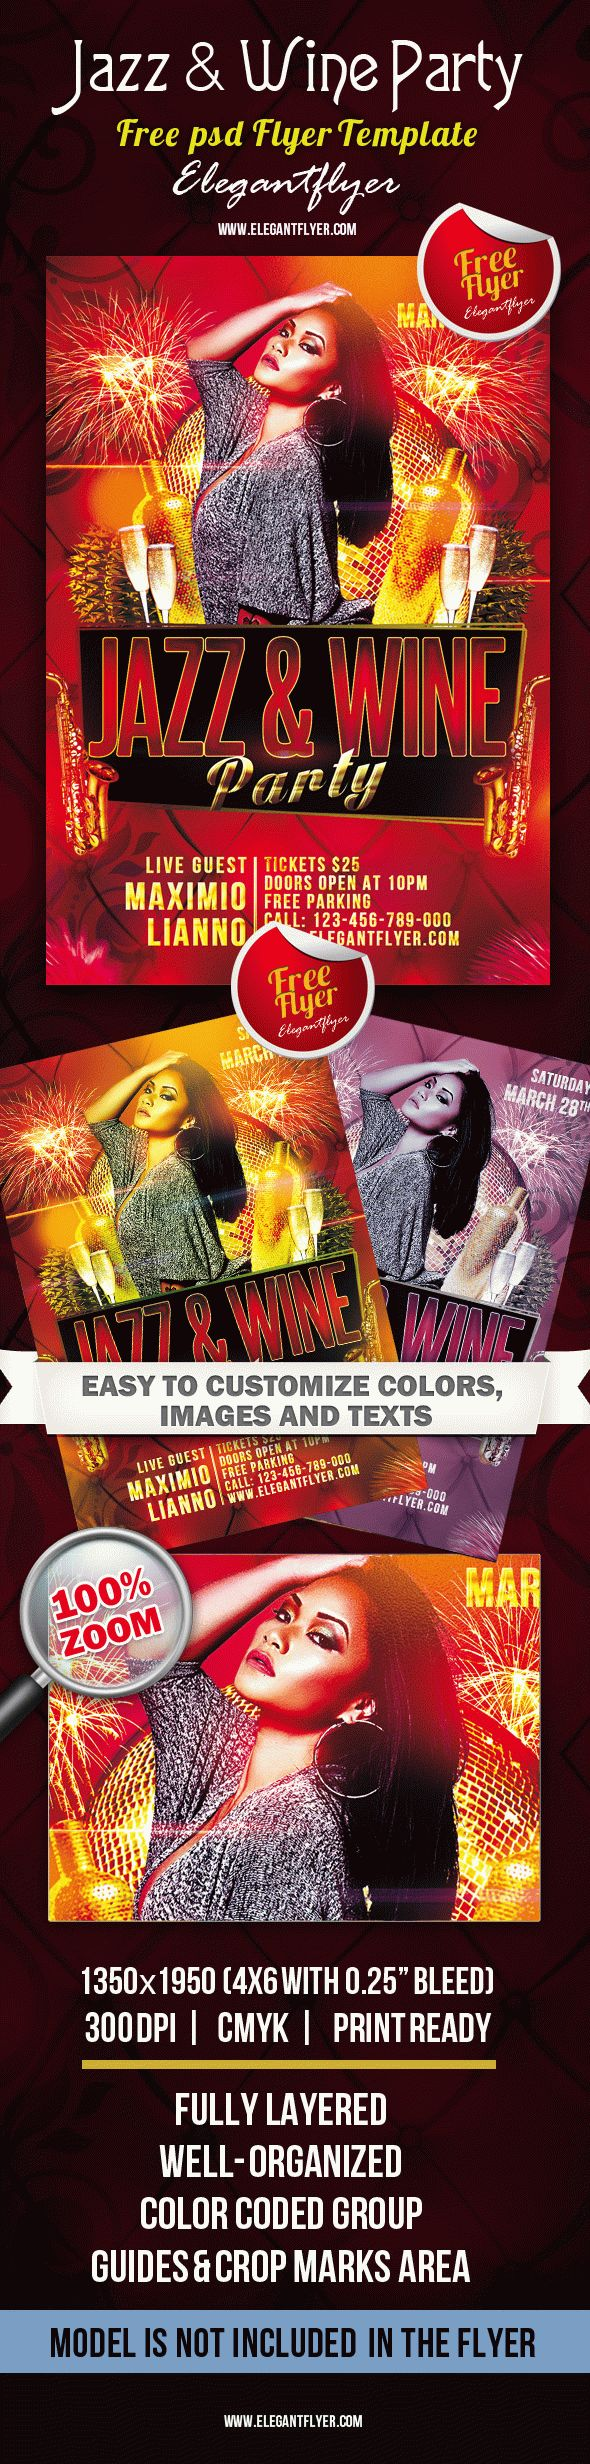 jazz wine party club and party flyer psd template by jazz wine party club and party flyer psd template